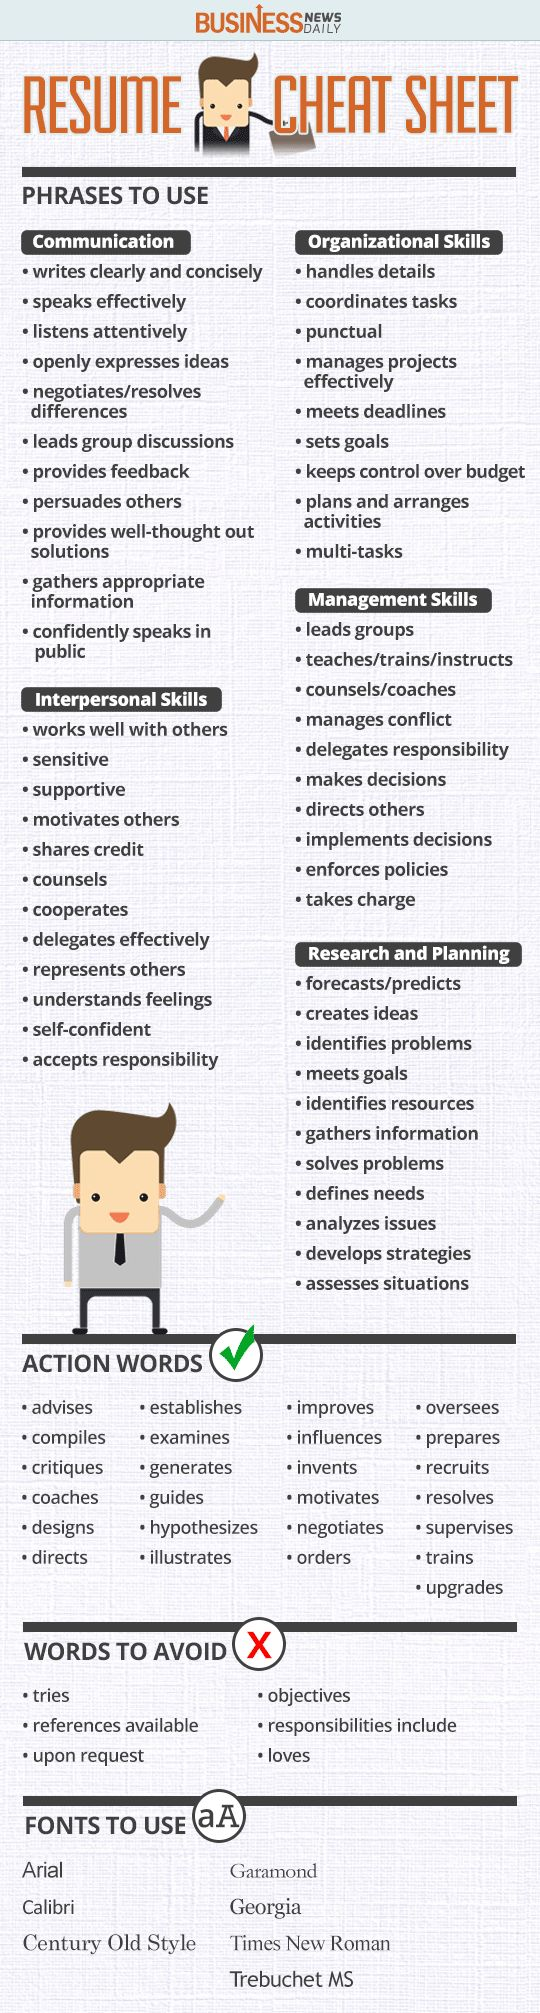 Opposenewapstandardsus  Pleasant  Ideas About Resume On Pinterest  Cv Format Resume Cv And  With Likable Resume Cheat Sheet Infographic Andrews Almost Done With A Complete Unit On Employment Which With Astounding Grad School Resume Template Also Example Of Job Resume In Addition Optimal Resume Toledo And Cv Resume Builder As Well As Resume Website Examples Additionally Process Engineer Resume From Pinterestcom With Opposenewapstandardsus  Likable  Ideas About Resume On Pinterest  Cv Format Resume Cv And  With Astounding Resume Cheat Sheet Infographic Andrews Almost Done With A Complete Unit On Employment Which And Pleasant Grad School Resume Template Also Example Of Job Resume In Addition Optimal Resume Toledo From Pinterestcom